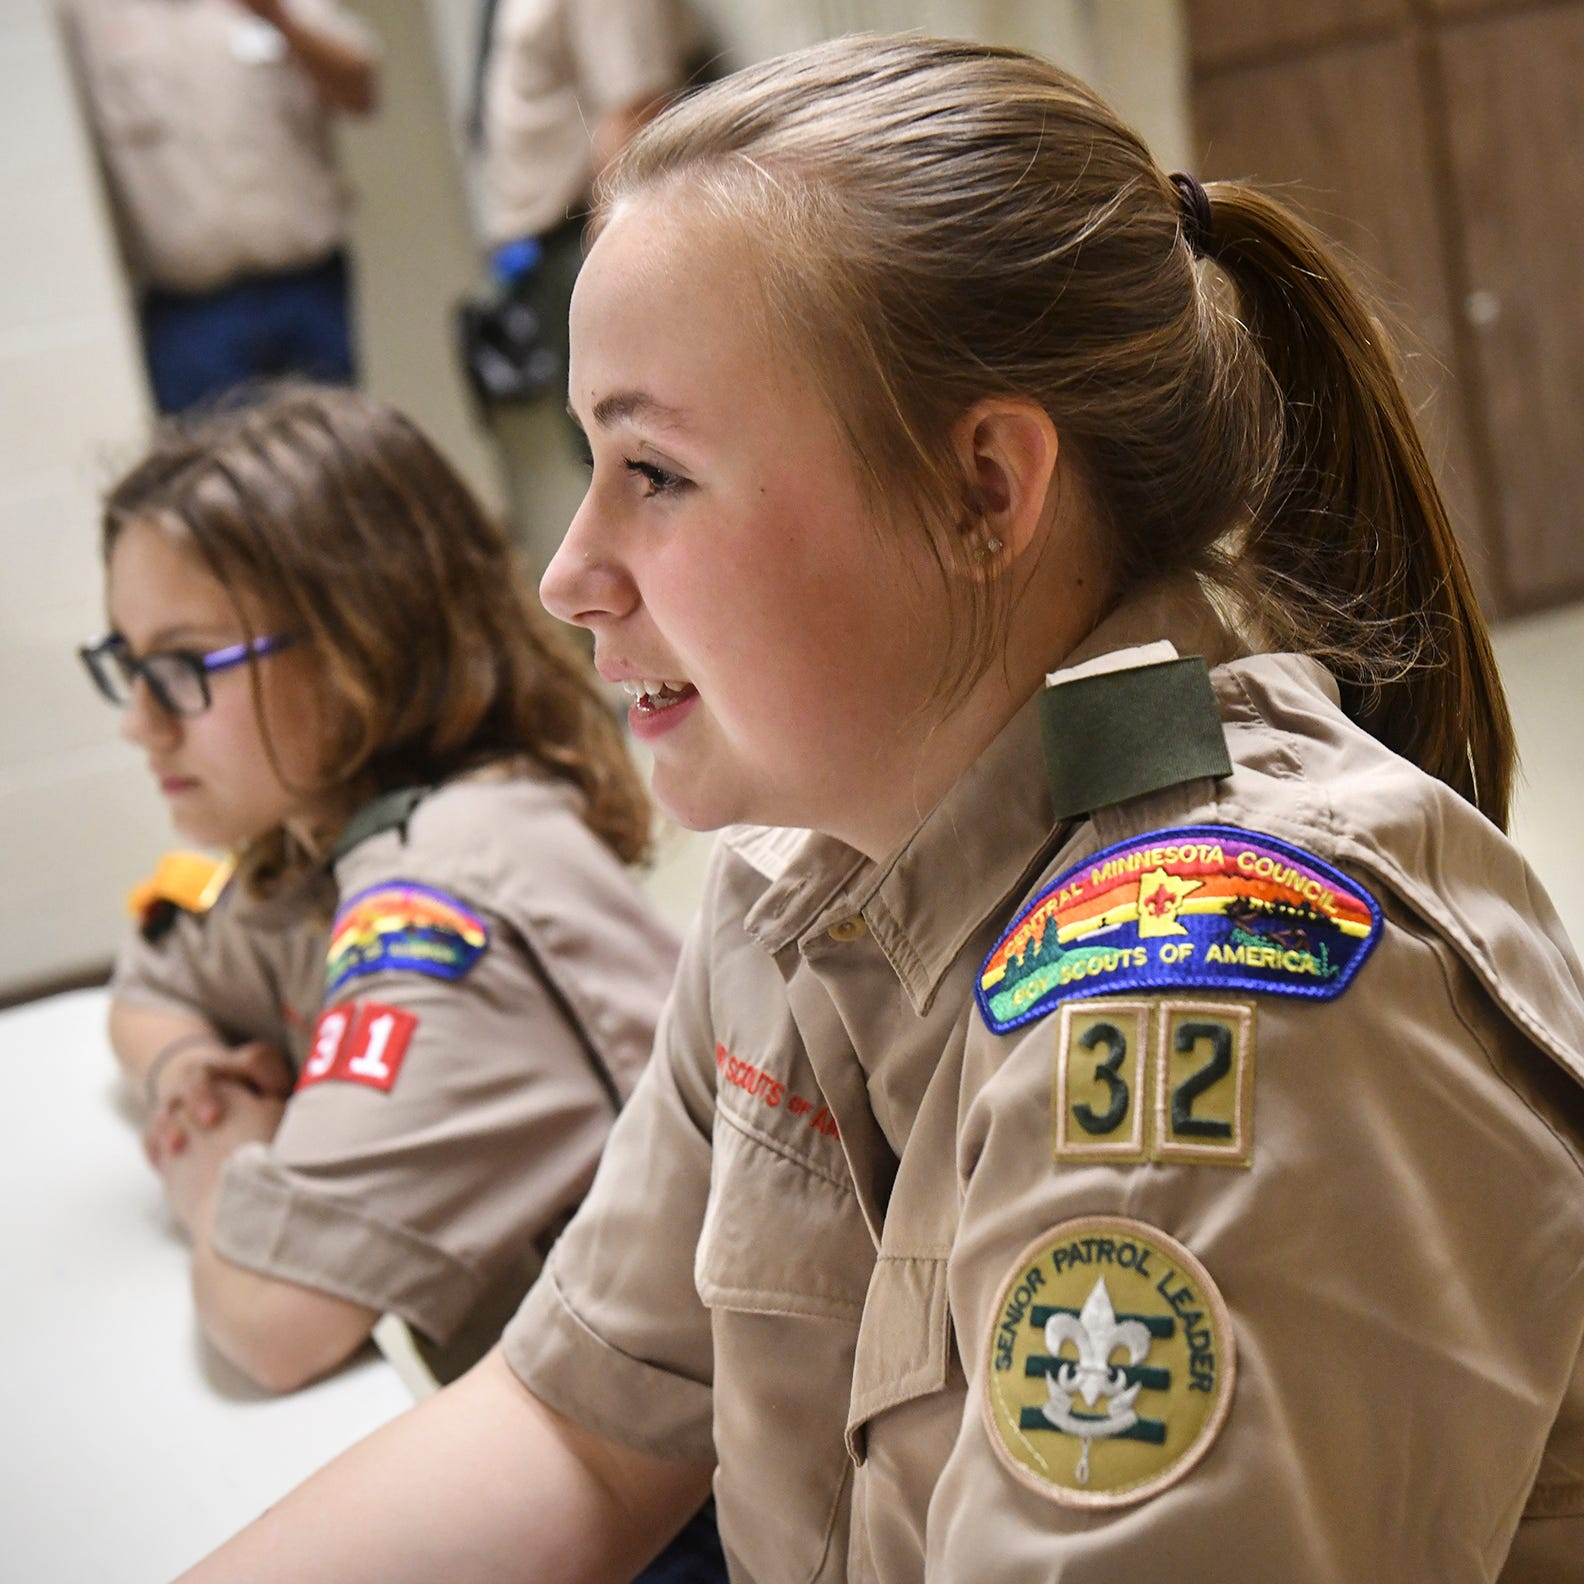 These 7 girls made history as the first all-girl Scouts BSA troop in Central Minnesota